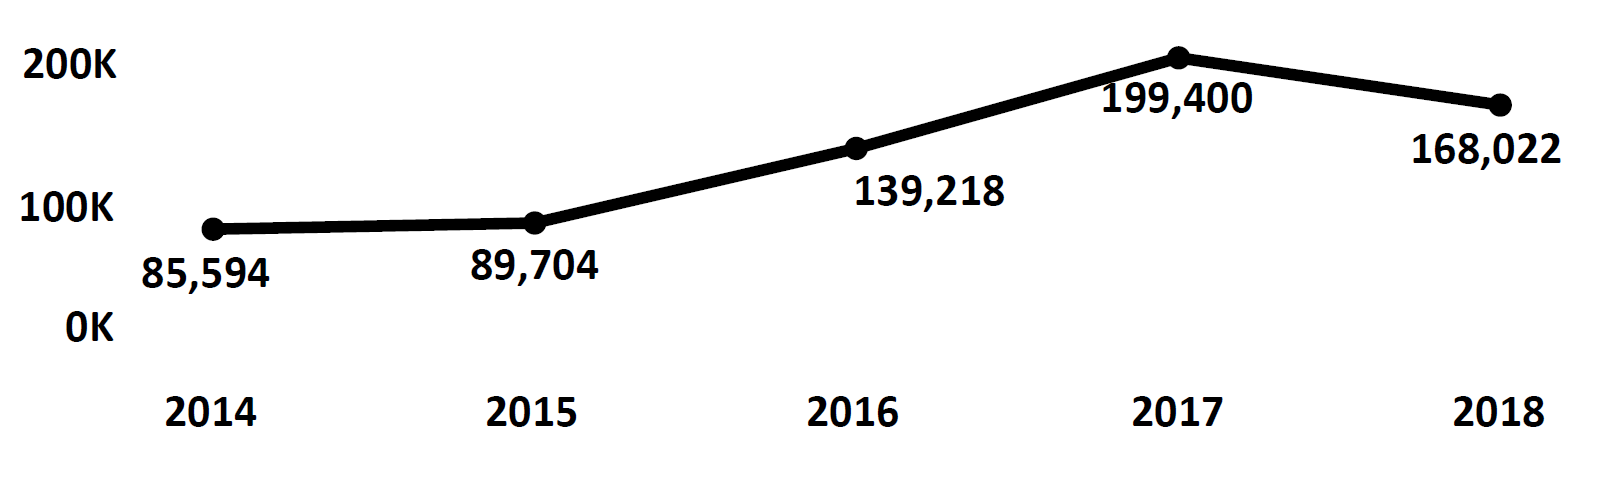 Graph of Do Not Call complaints recorded in North Carolina from fiscal year 2014 to fiscal year 2018. In 2014 there were 85,594 complaints filed, which increased each year peaking at 199,400 in 2017. In 2018 there were 168,022 complaints filed, fewer than 2017.